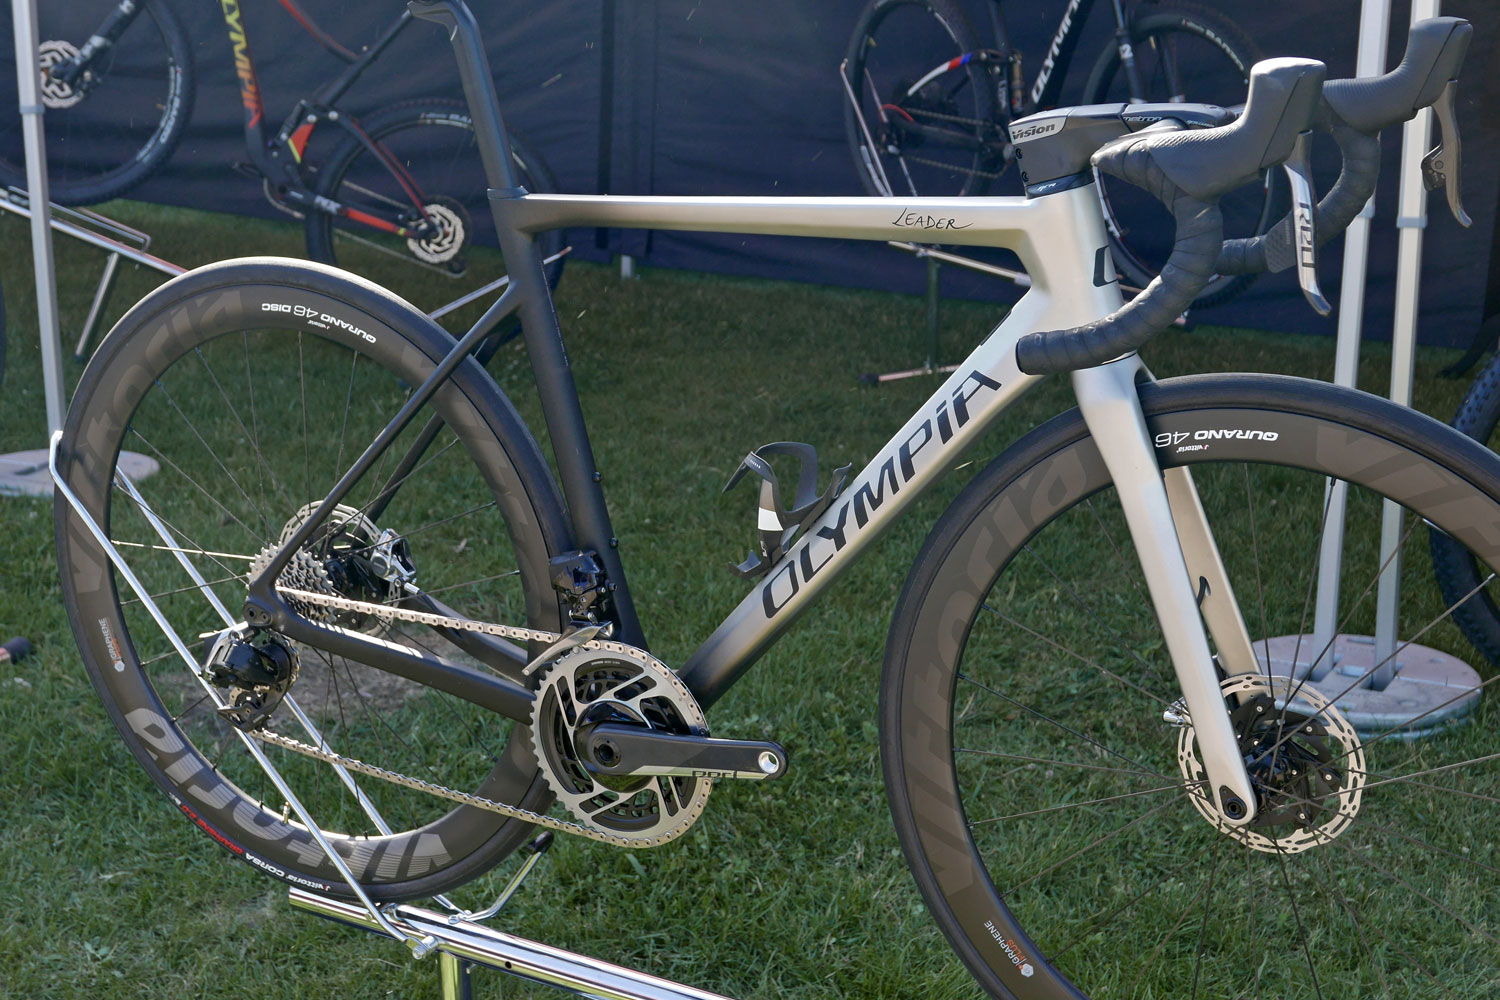 Best Road Bikes 2020 Olympia has a new Leader, a sub 900g aero carbon disc brake road